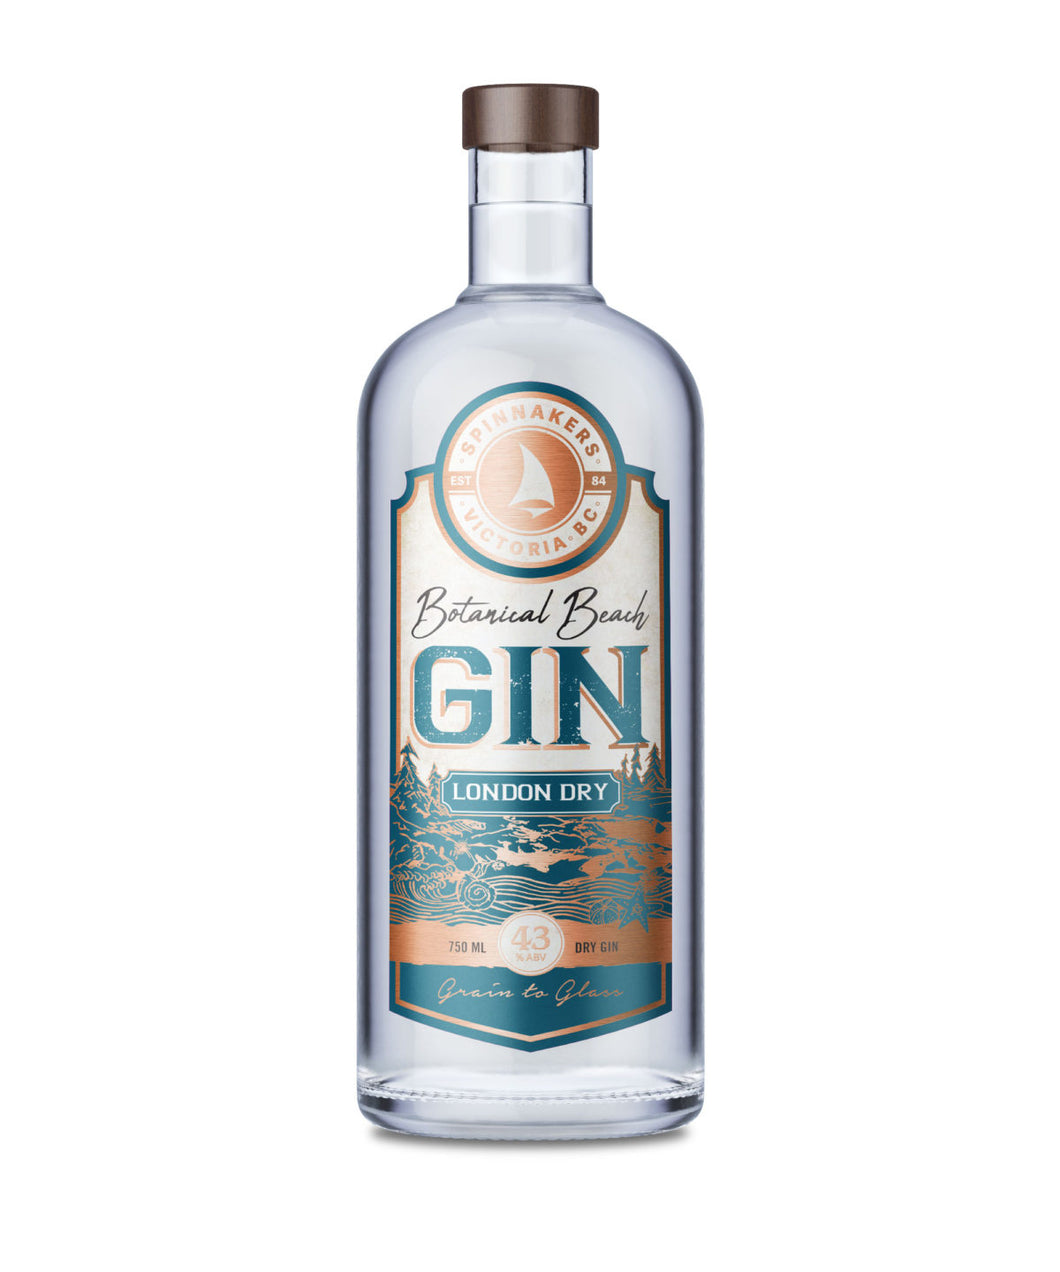 Spinnakers Botanical Beach London Dry Gin 200 ml